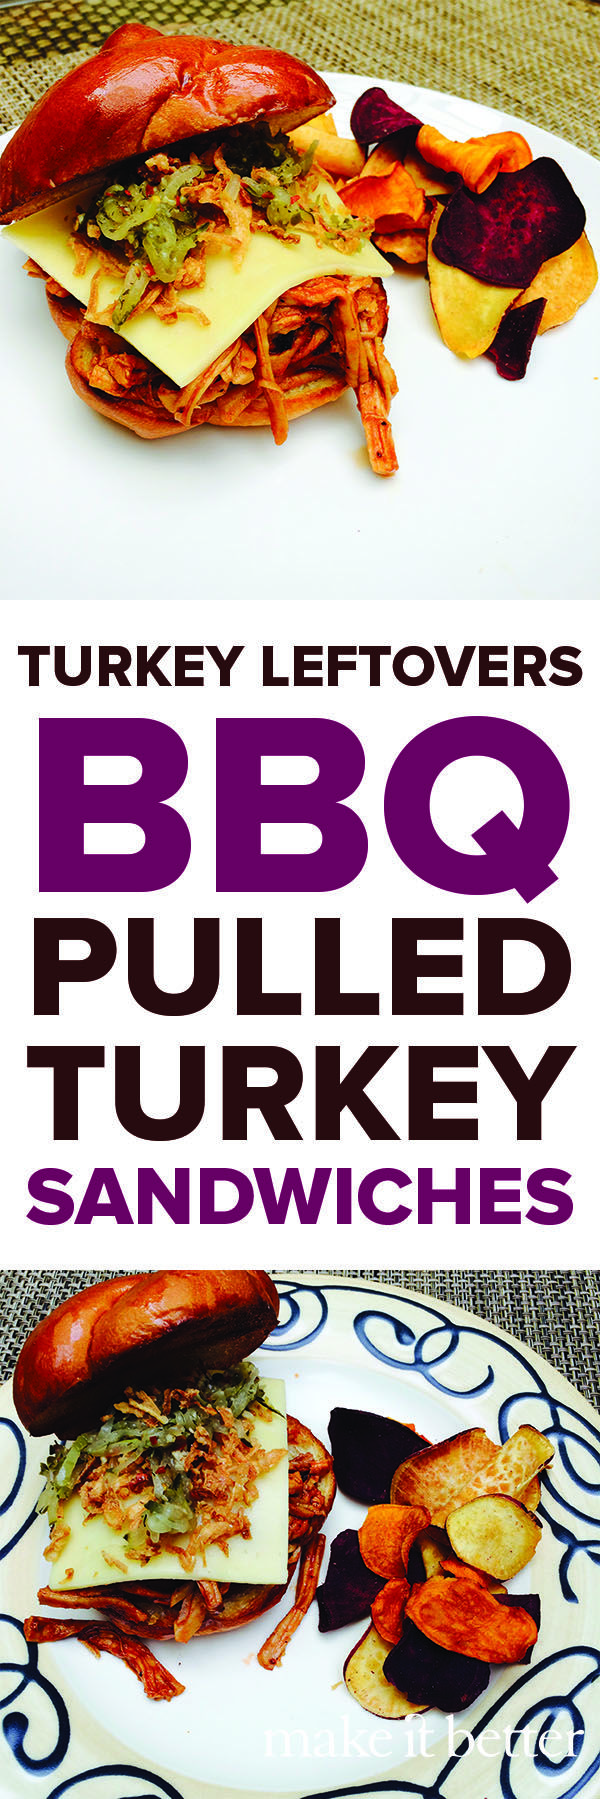 Turkey Day leftover meal: BBQ pulled turkey sandwiches using shredded ...